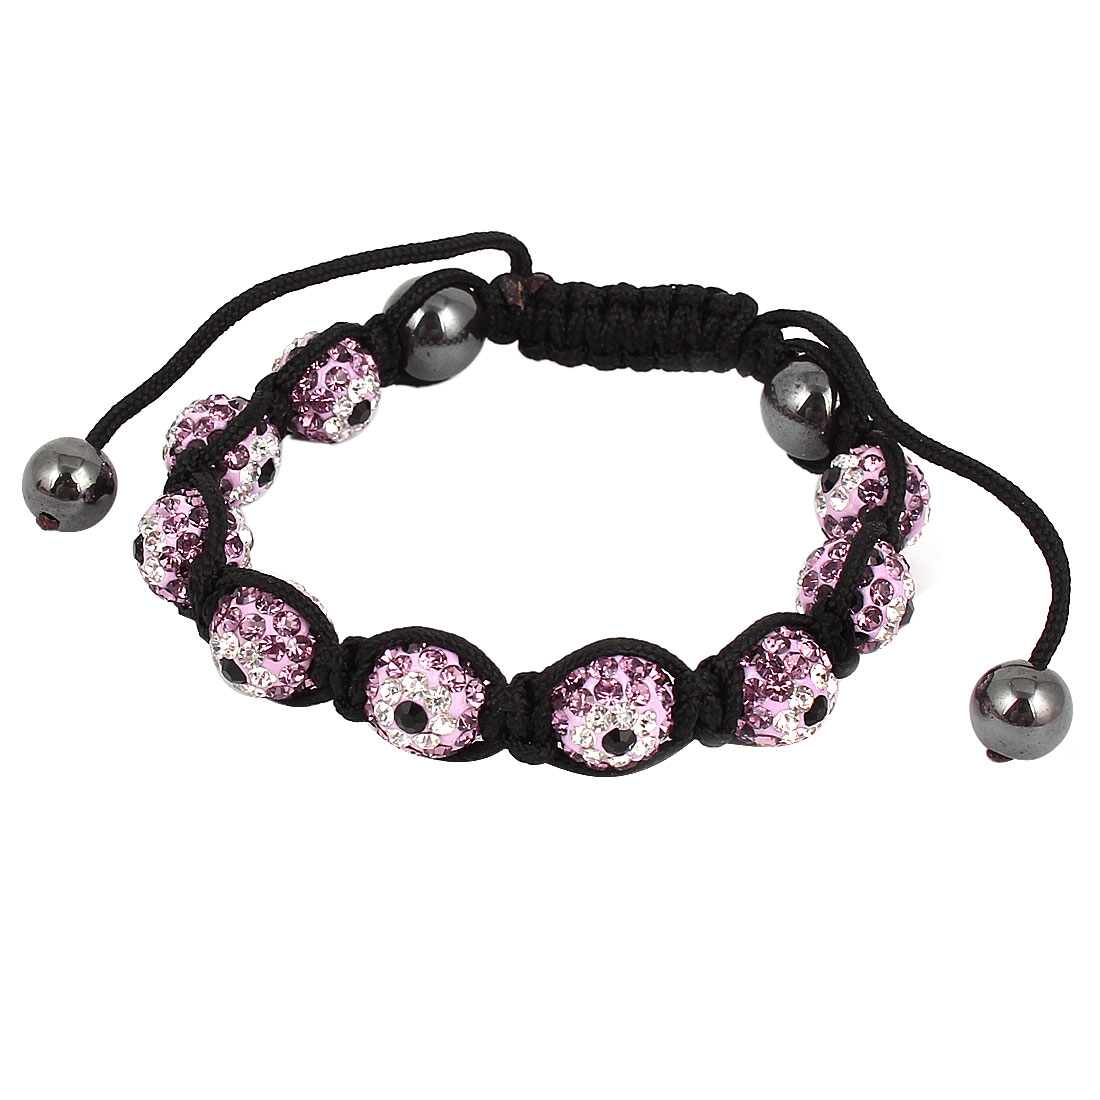 Unique Bargains Pink Rhinestone Detail Ball Linked Rope Knotted Adjustable Bracelet for Lady